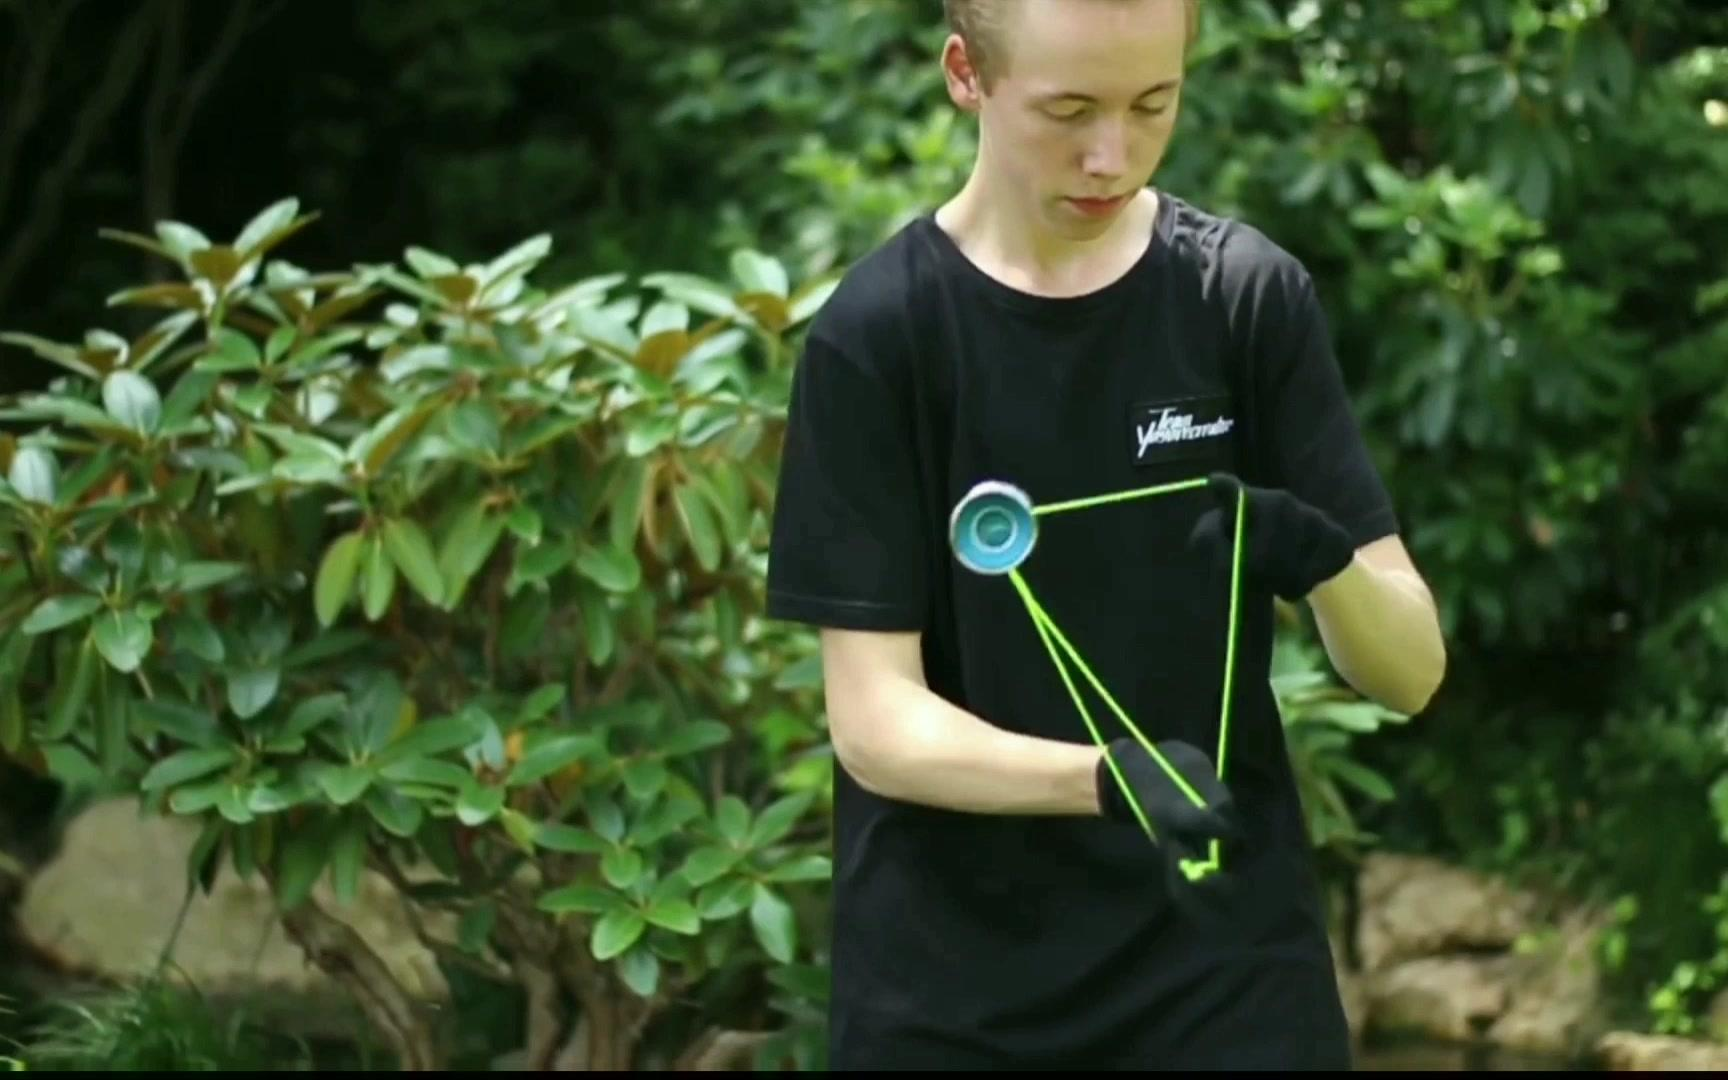 【欧美手速少】极限手速欧美玩家  捷克——Jakub Dekan X yoyorecreation(DRAUPNIR)